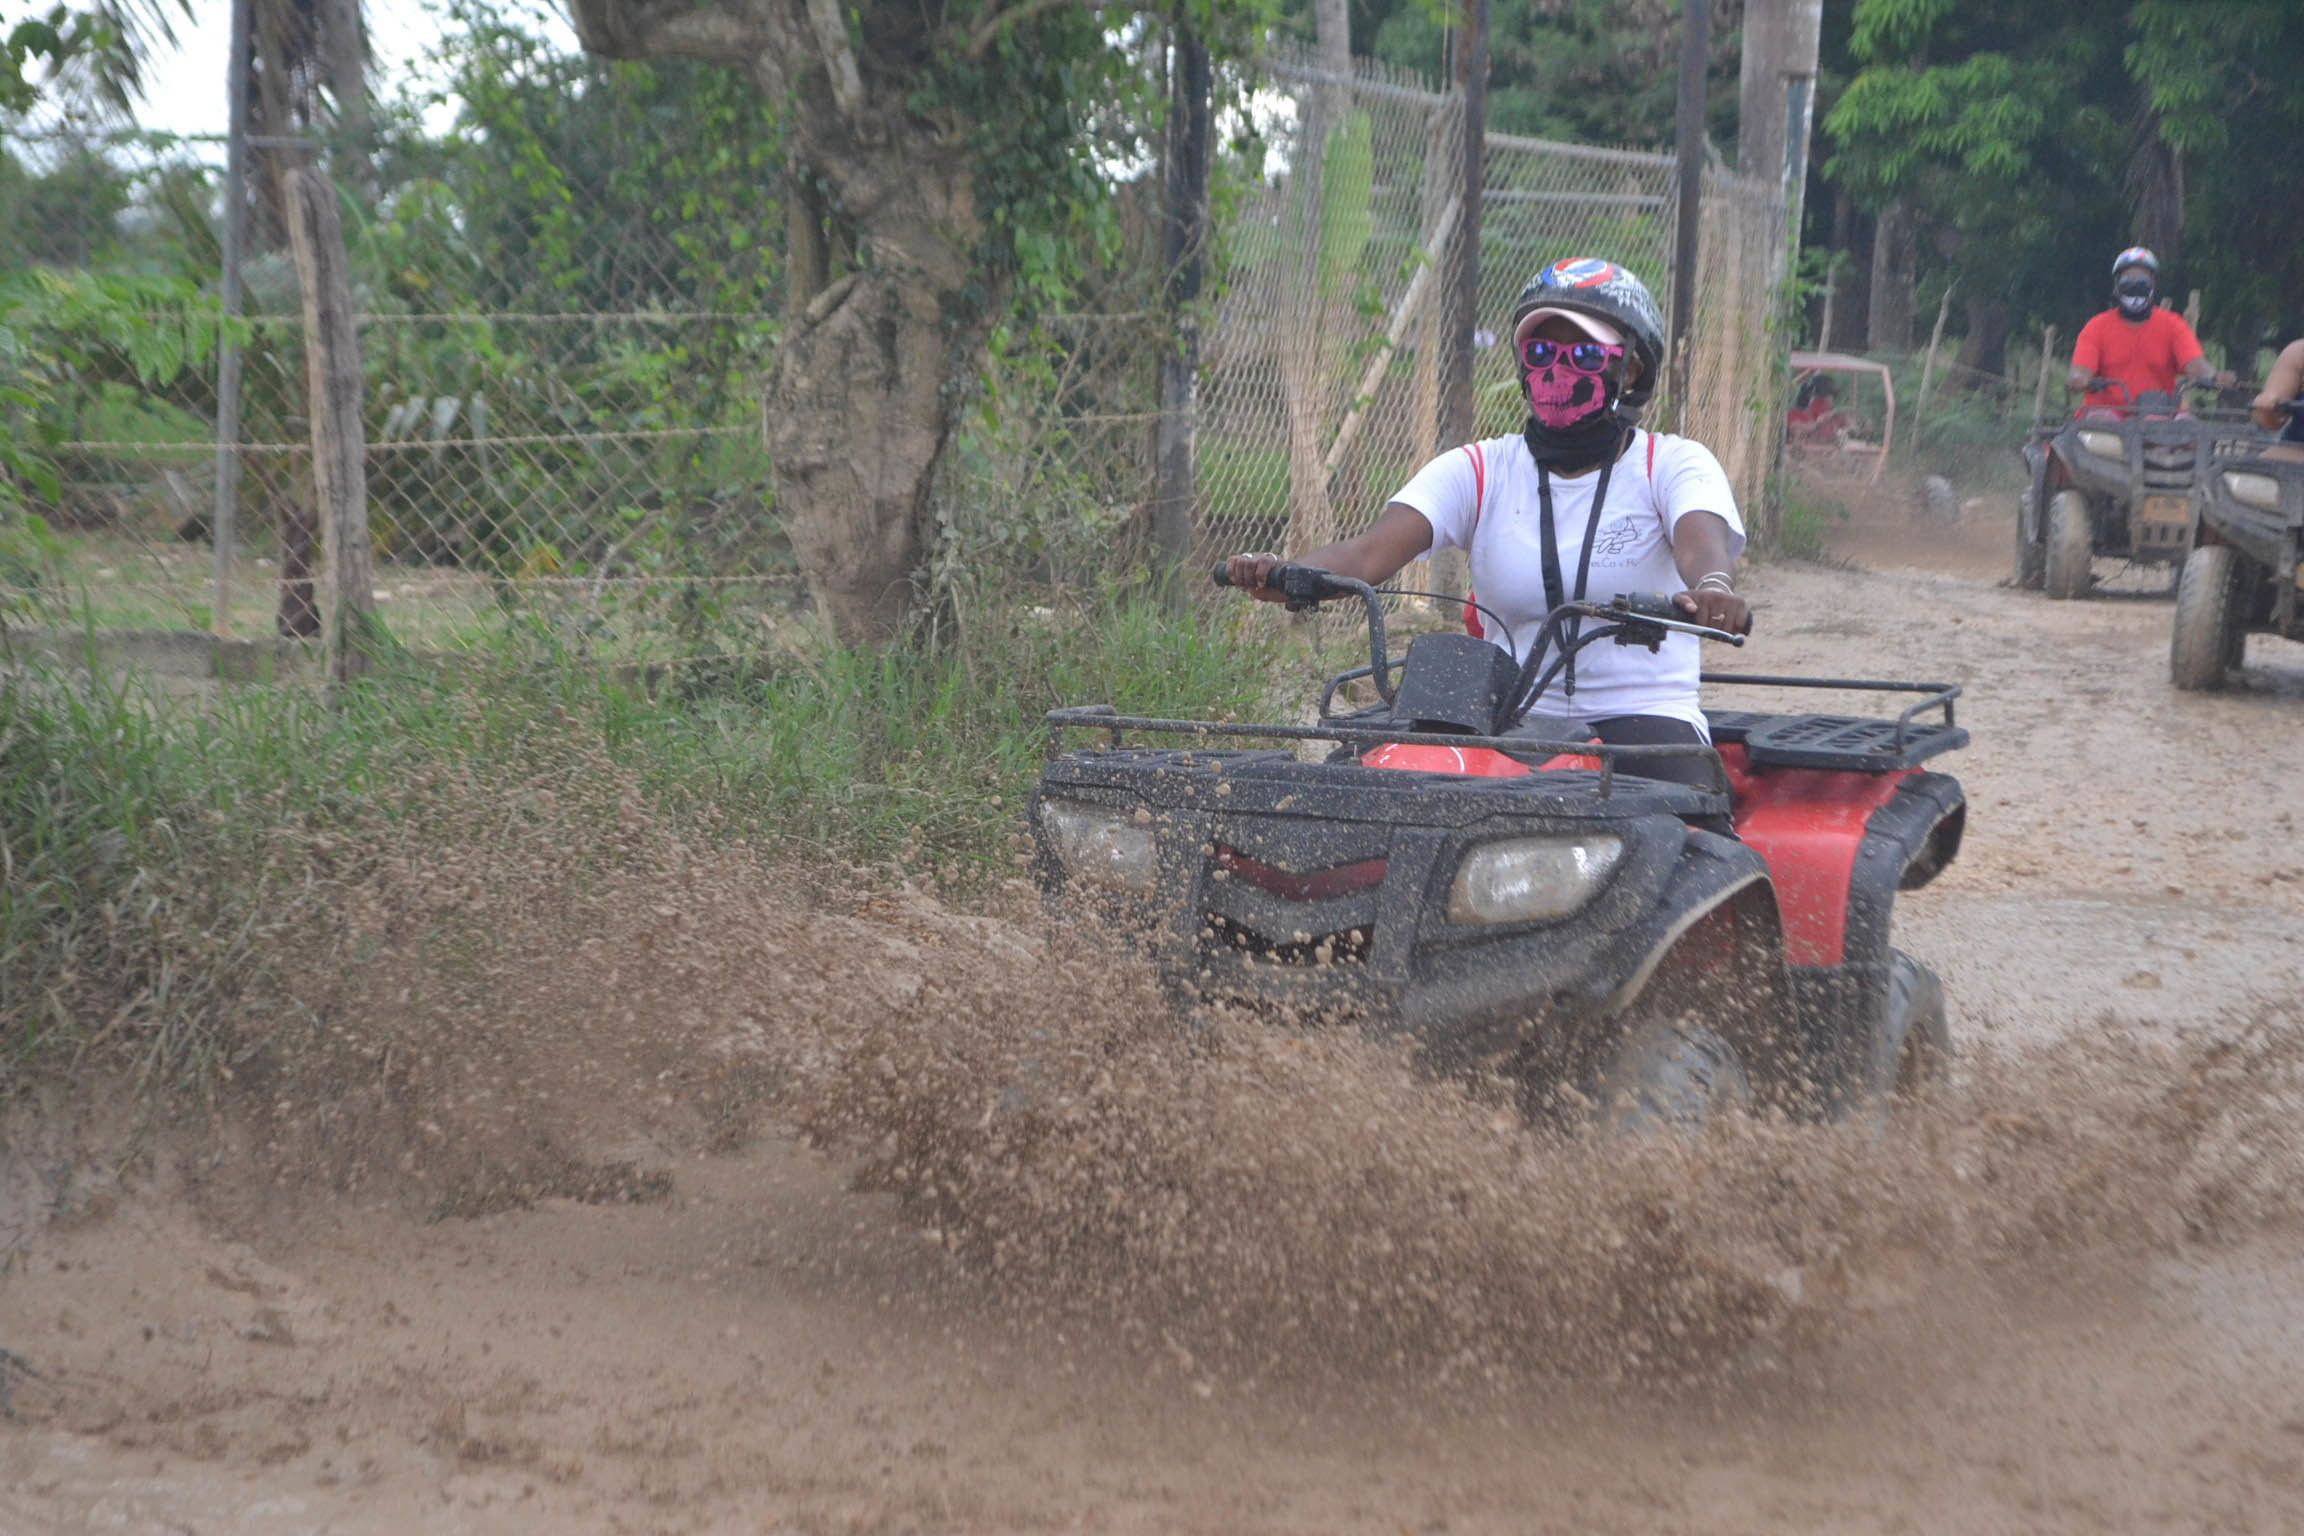 Woman riding an ATV in the mud in Punta Cana